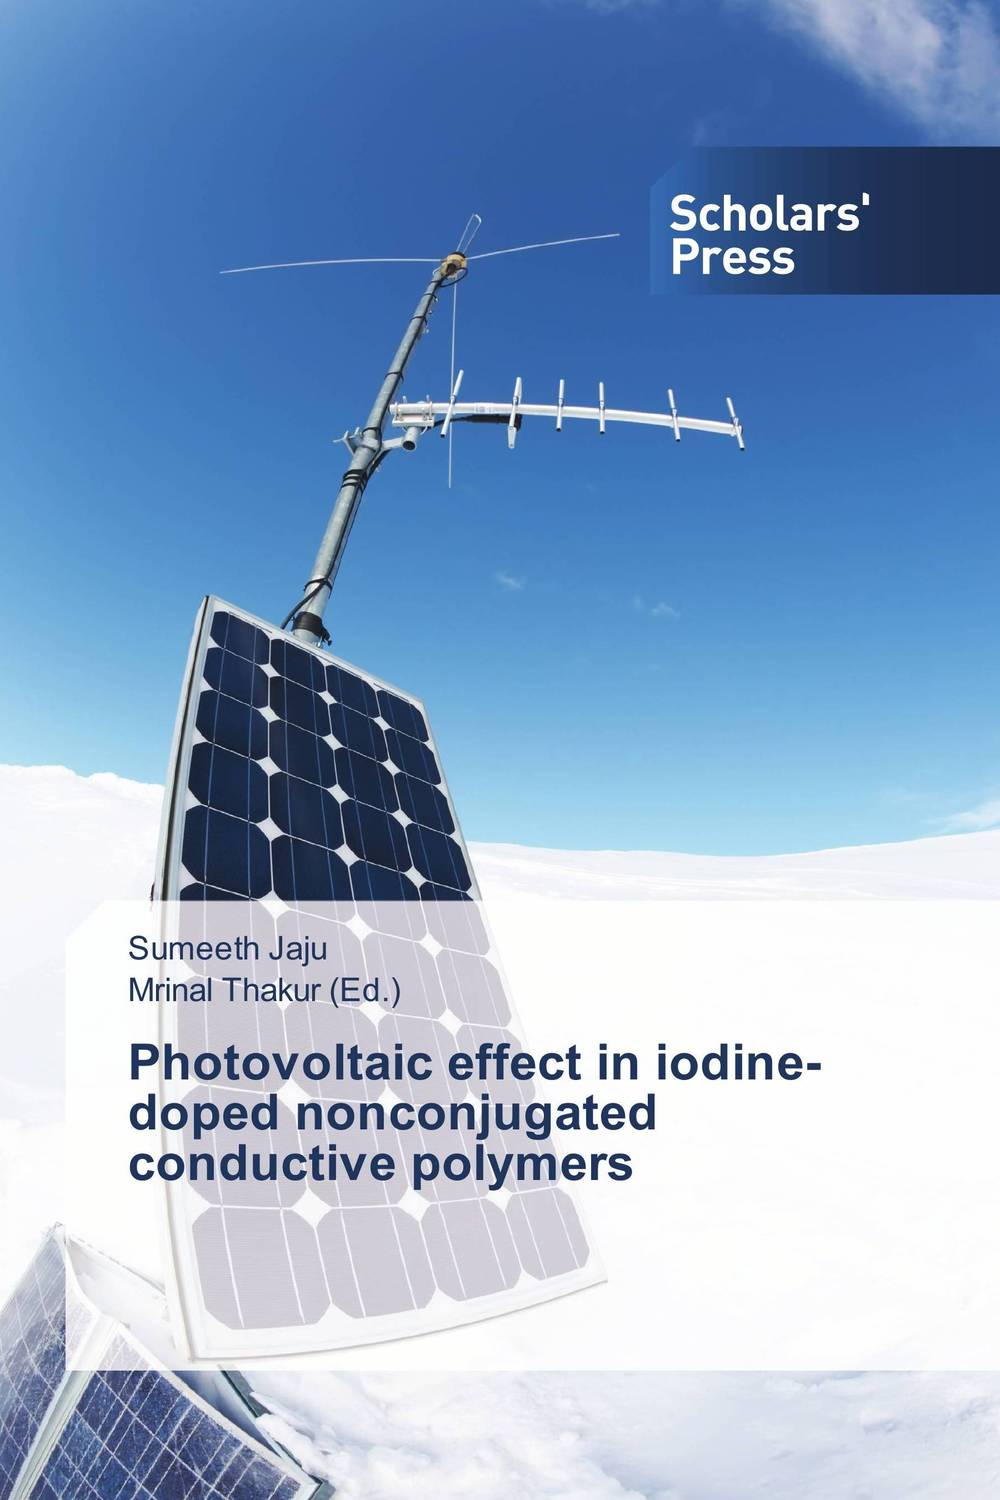 Photovoltaic effect in iodine-doped nonconjugated conductive polymers carbohydrate doped mgb2 superconductor for magnet application